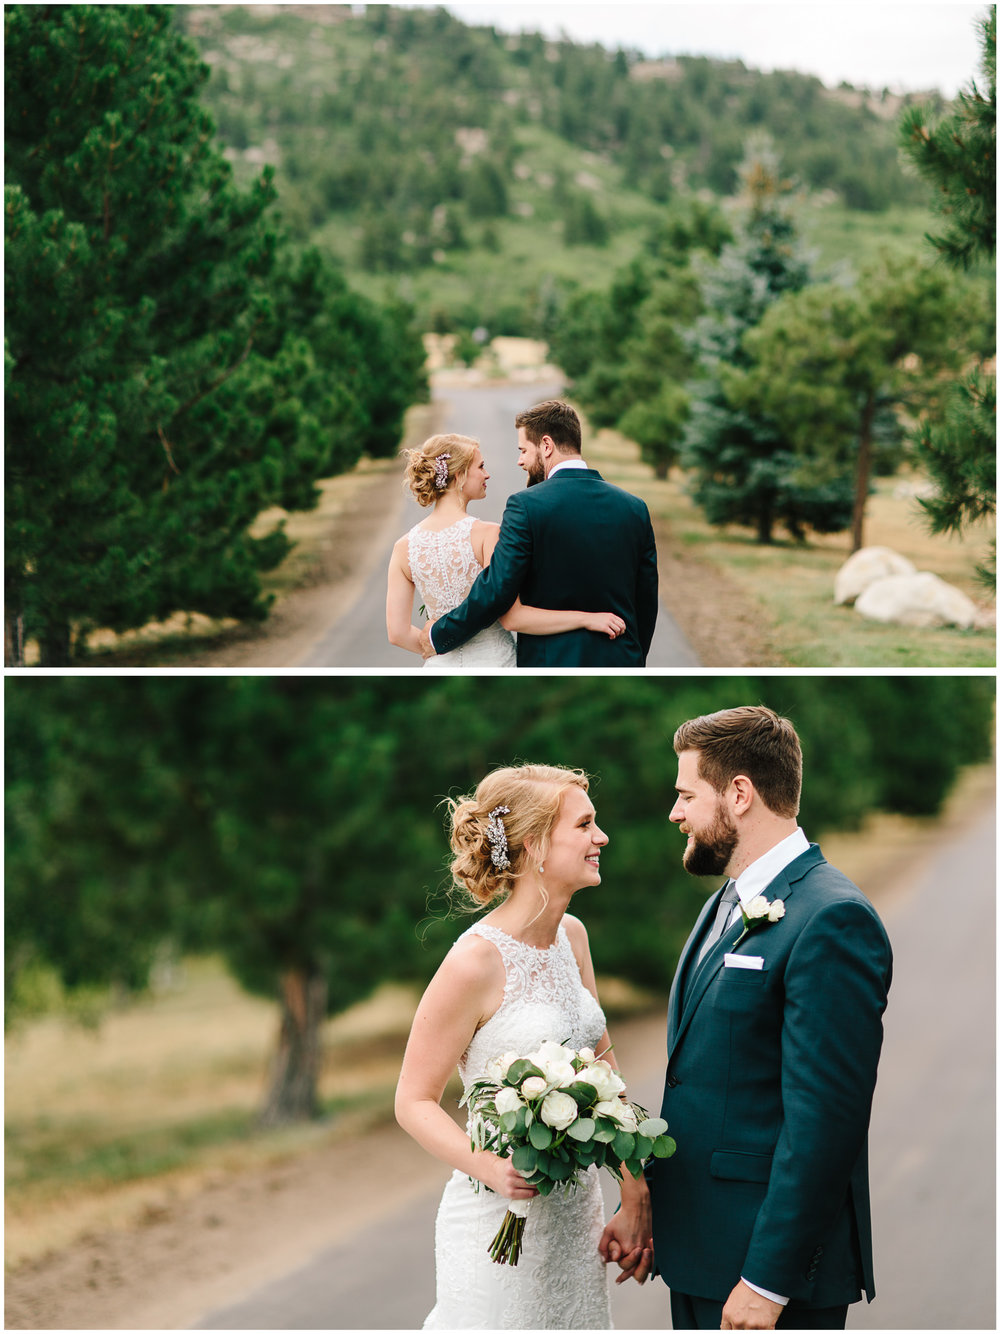 Spruce_Mountain_Ranch_Wedding_45.jpg